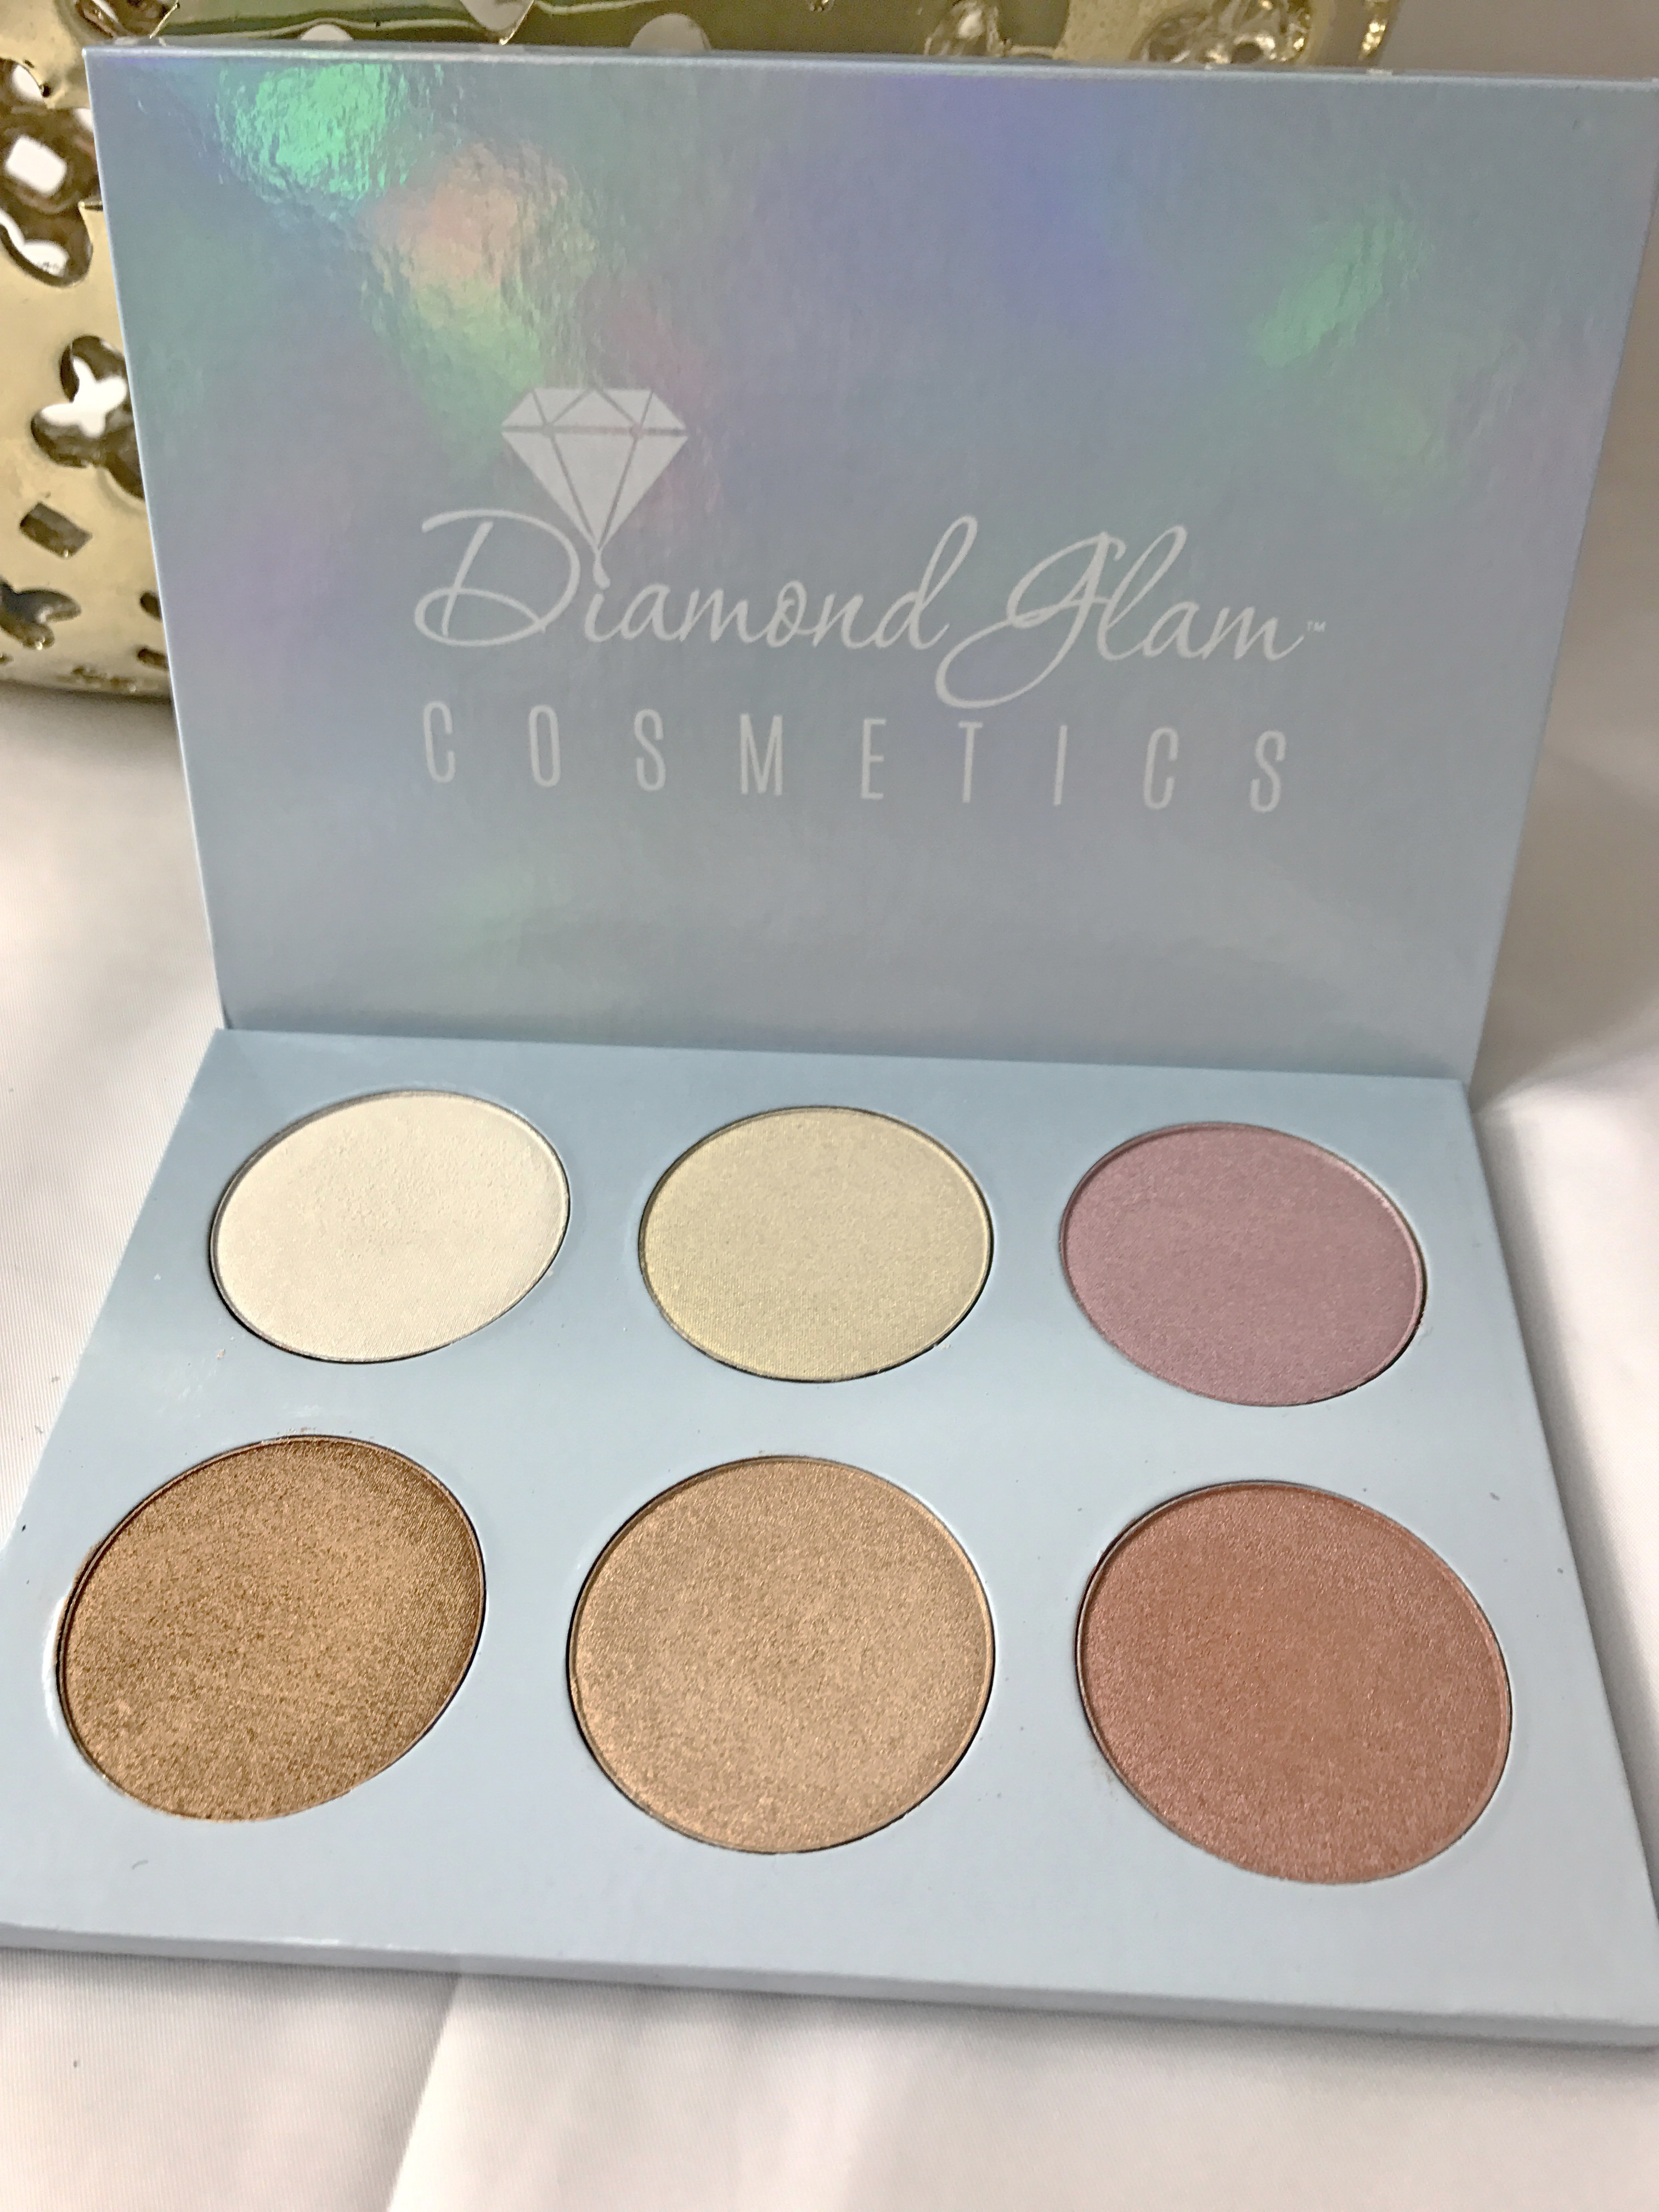 Diamond Glam Highlight Palette